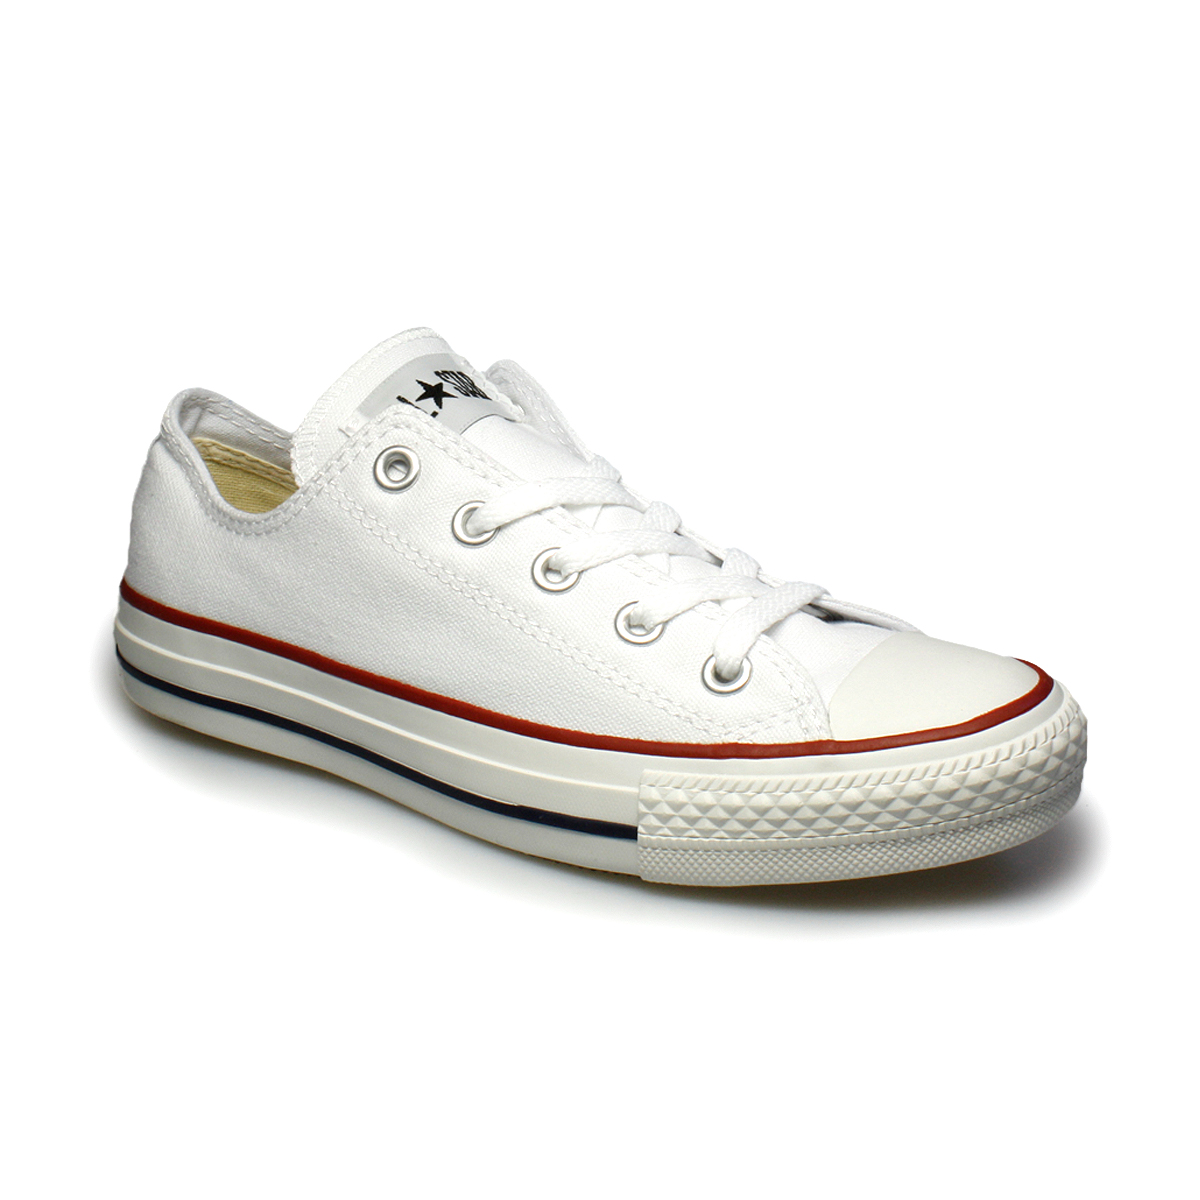 fabe414d900e Converse White Sneakers british-flower-delivery.co.uk